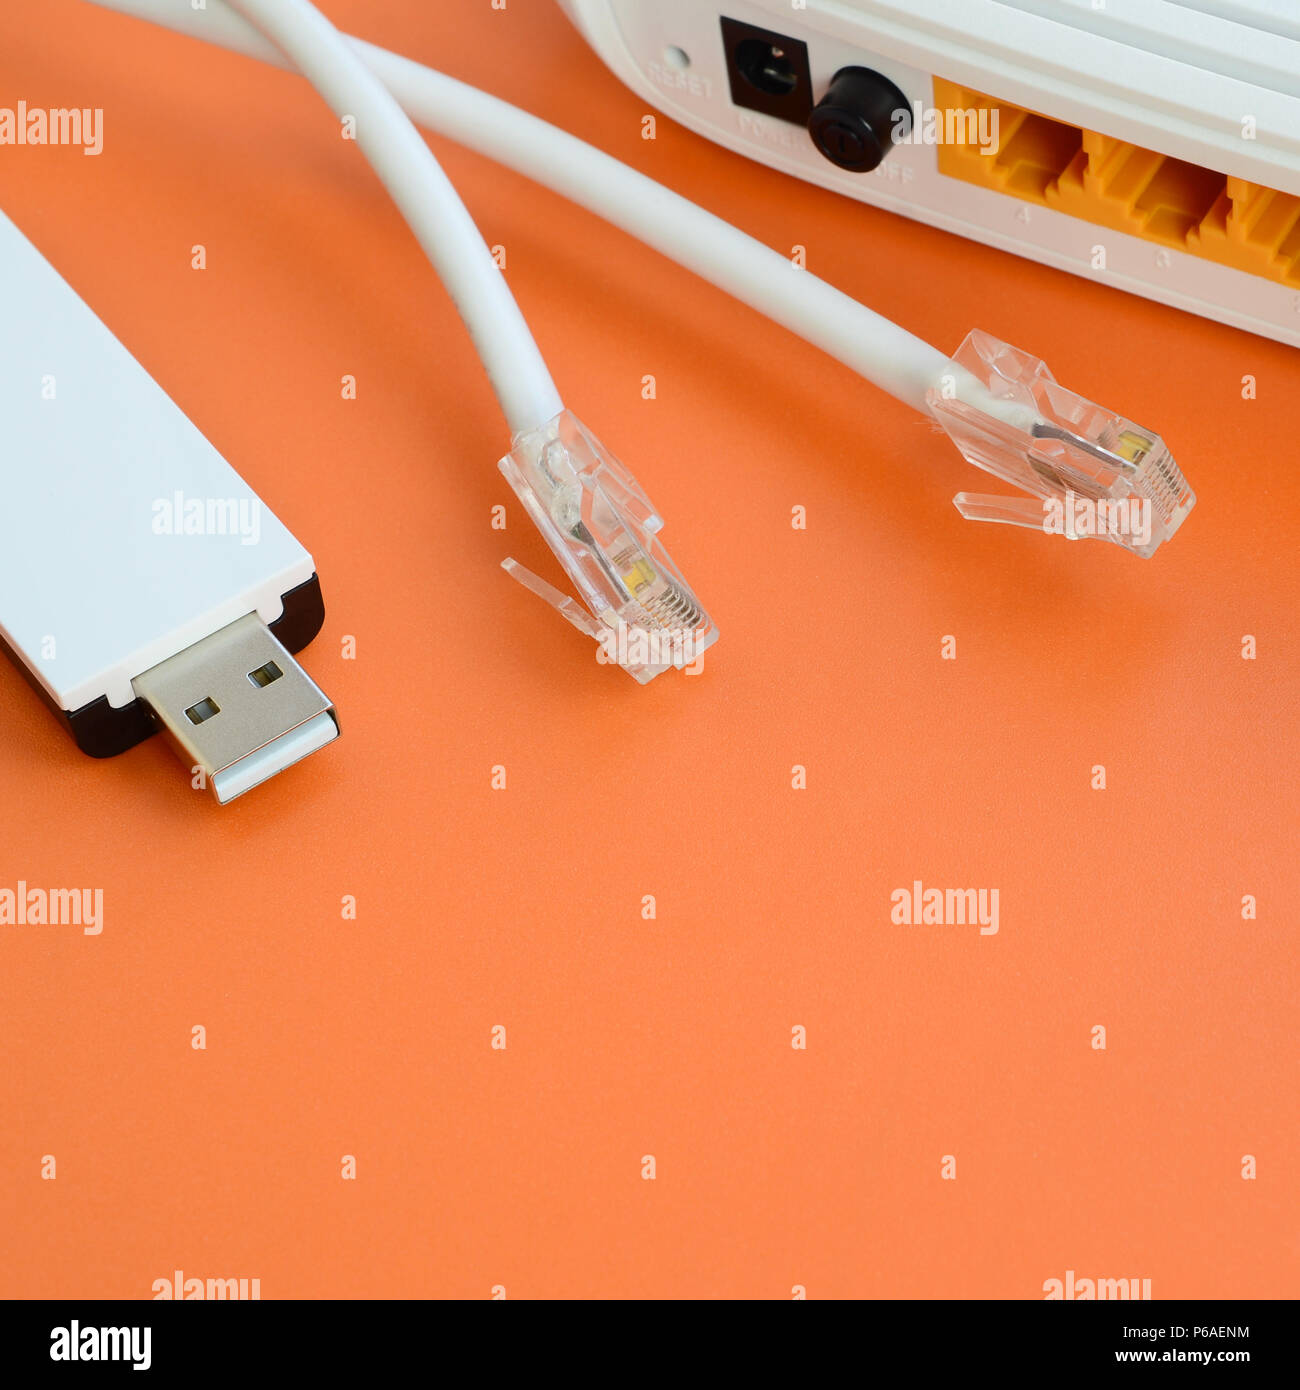 Internet Router Portable Usb Wi Fi Adapter And Cable Plugs Home Wiring Lie On A Bright Orange Background Items Required For Connection